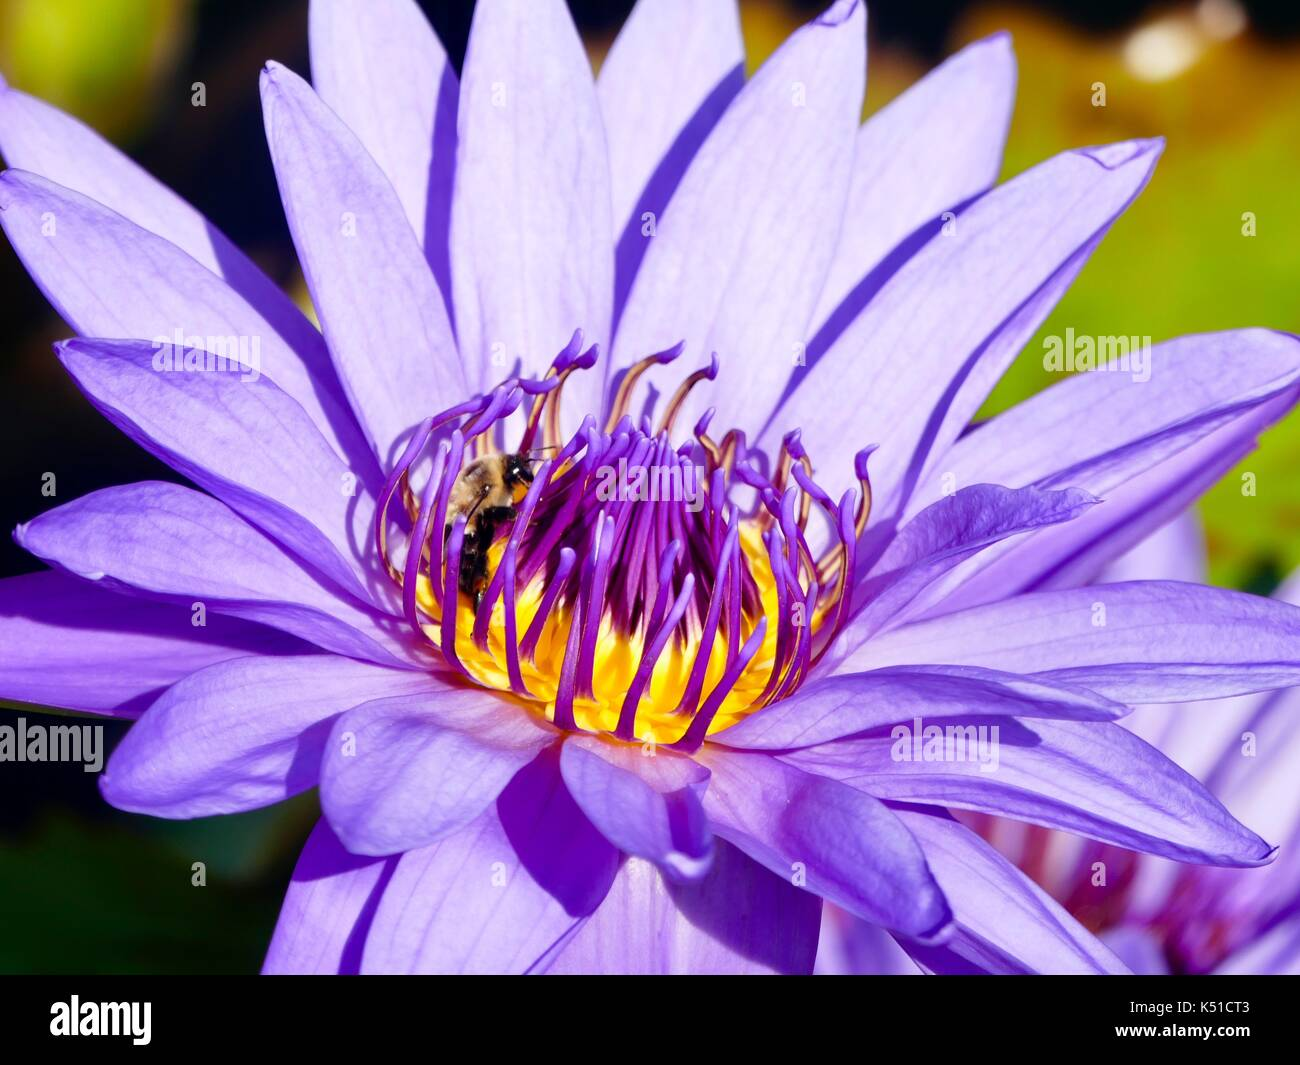 Closeup of tropical waterlily (Nymphaea). Purple with bee, pollinator, in center. New York, NY, USA. - Stock Image